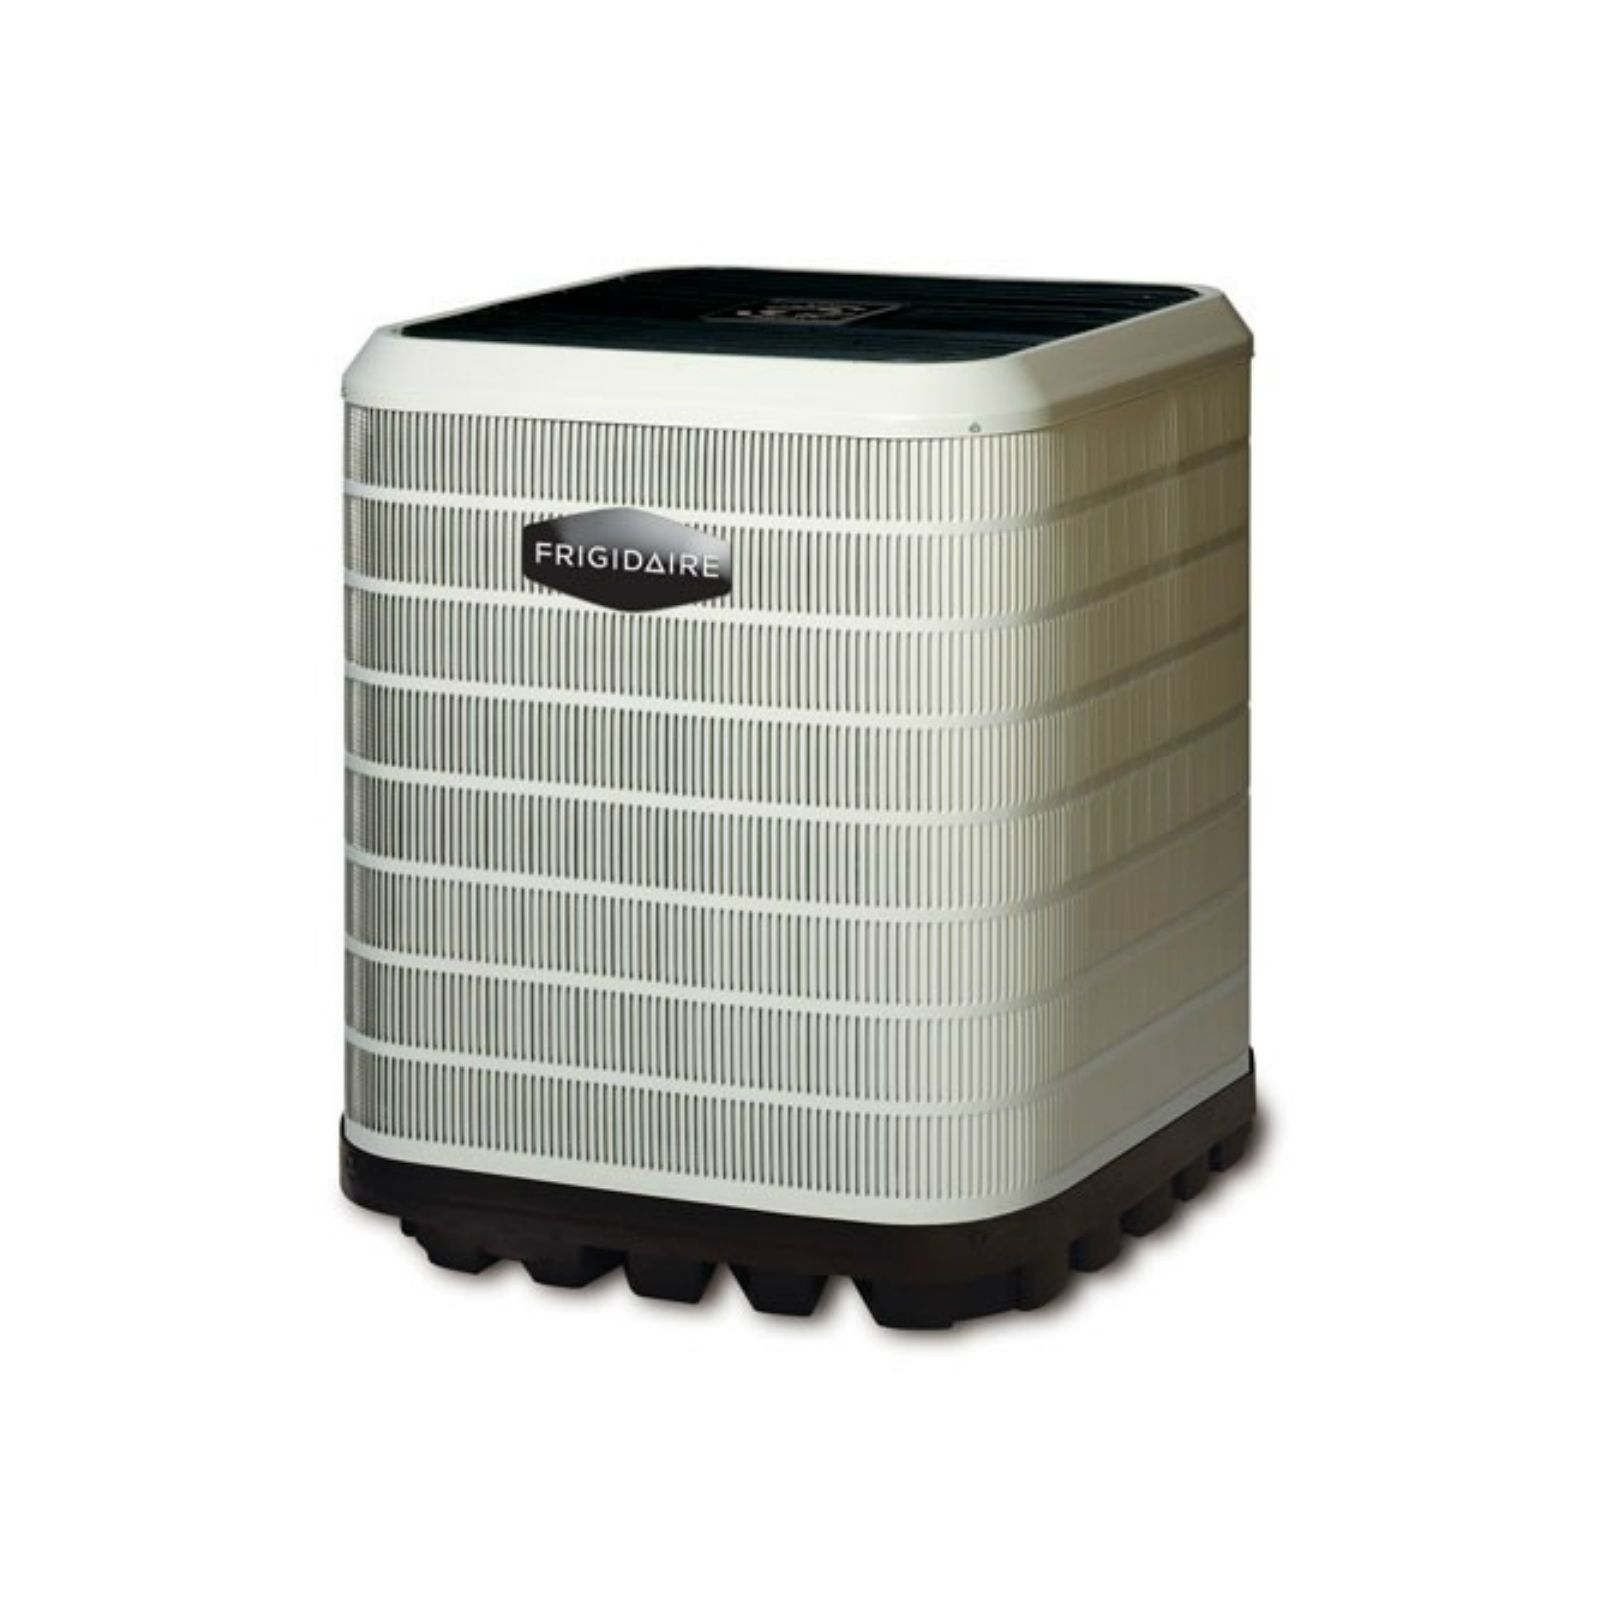 Frigidaire 921985F - FT4BE-042KA - 3 1/2 Ton 14 SEER High Efficiency Heat Pump, R410A